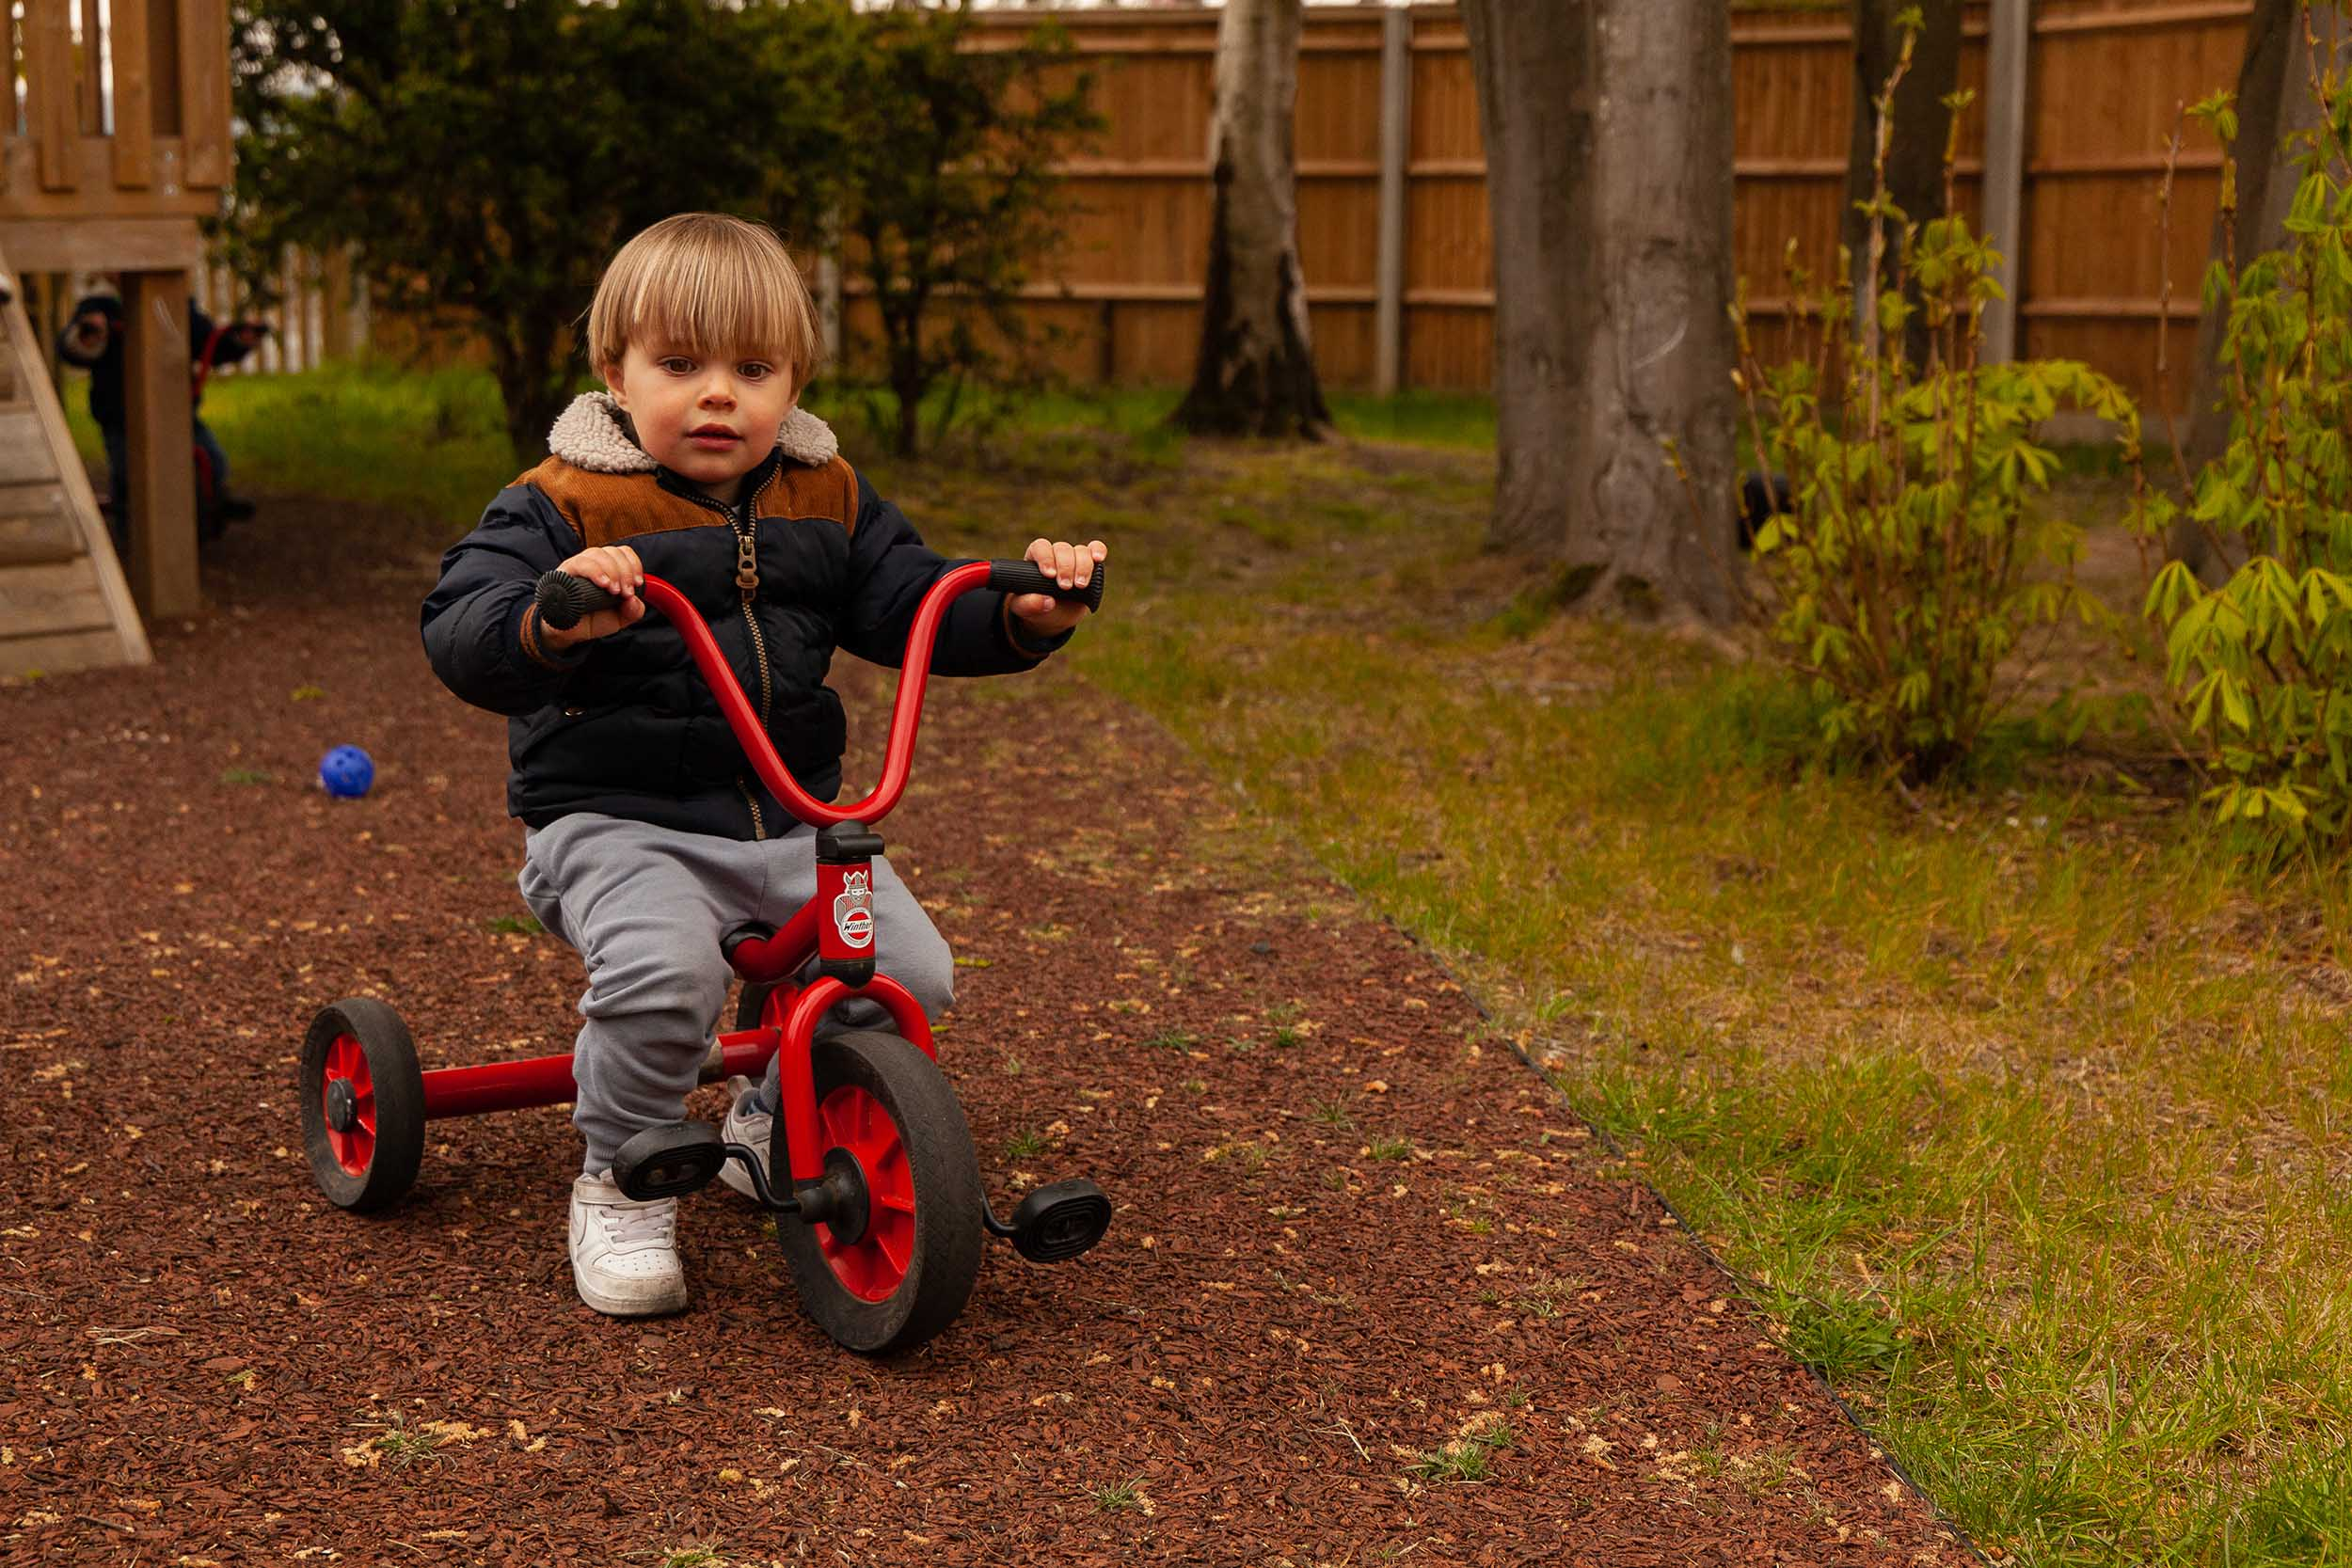 Boy on a tricycle